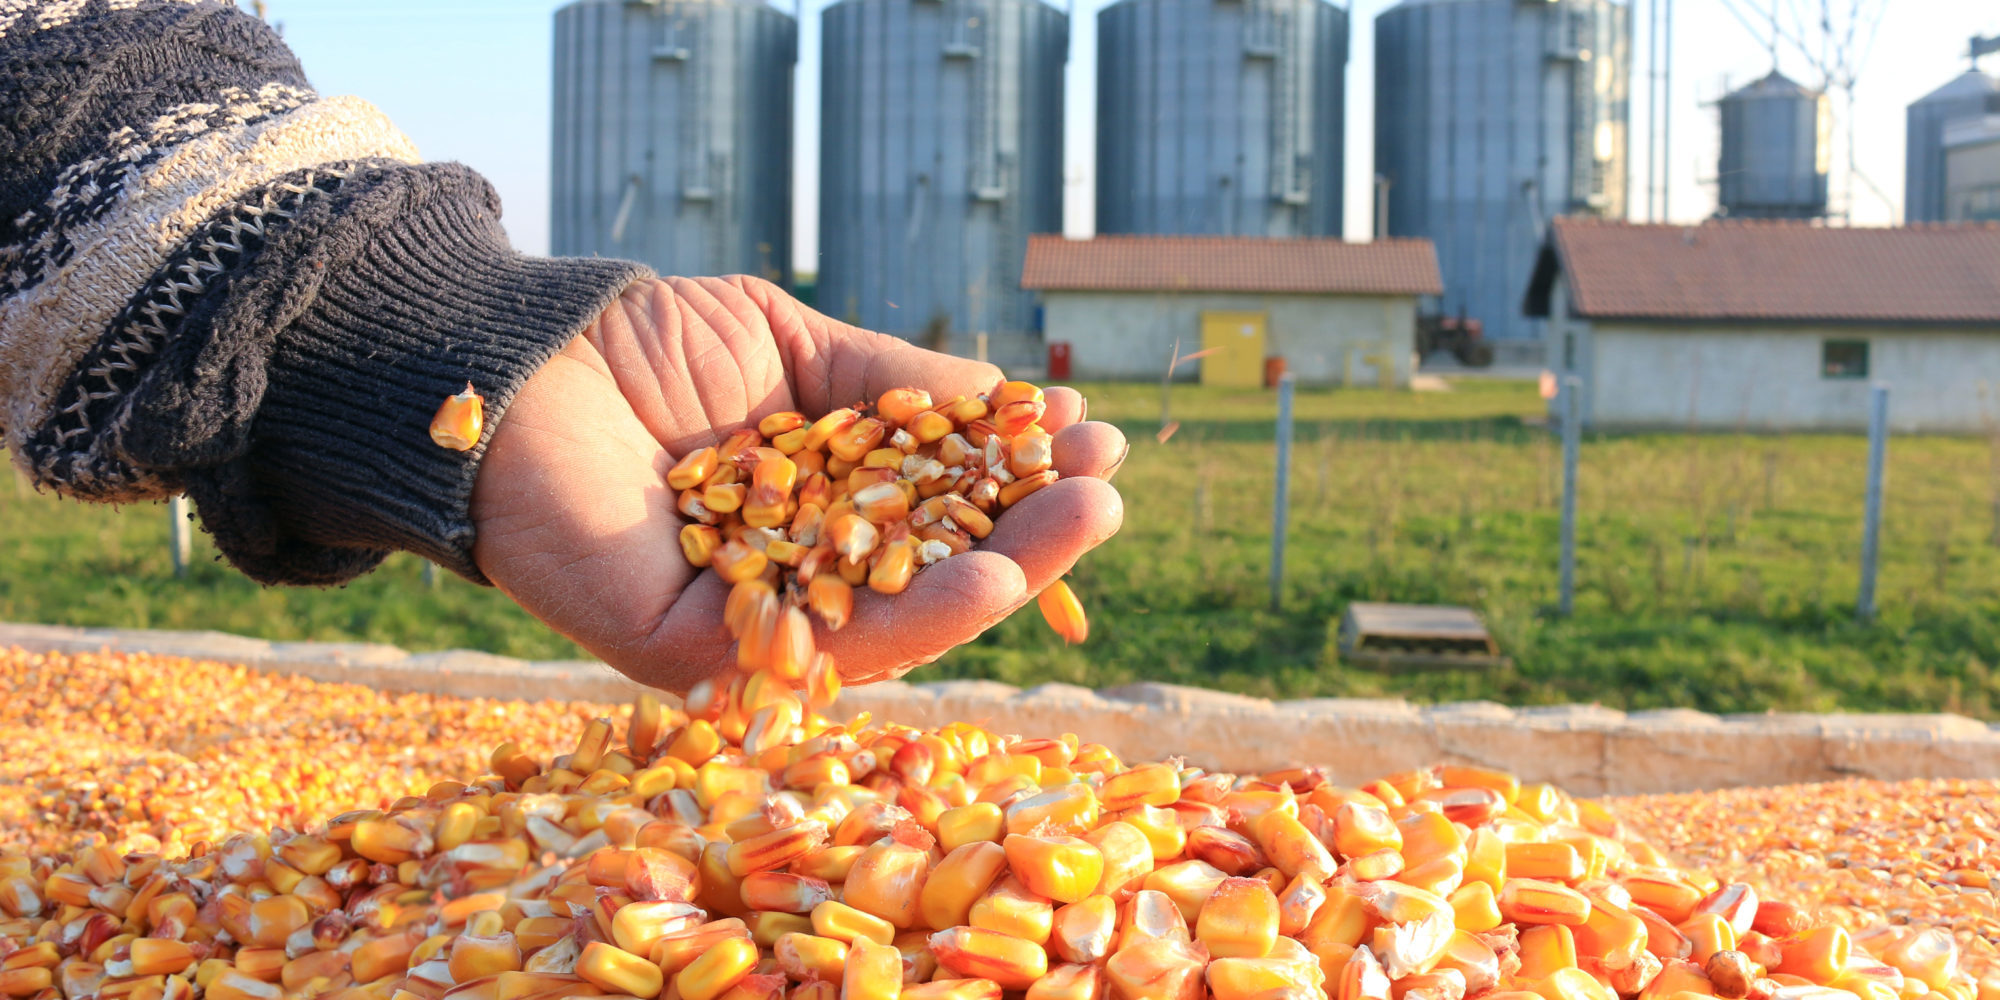 Where Are Organic Corn Prices Relative to the Historical Average?